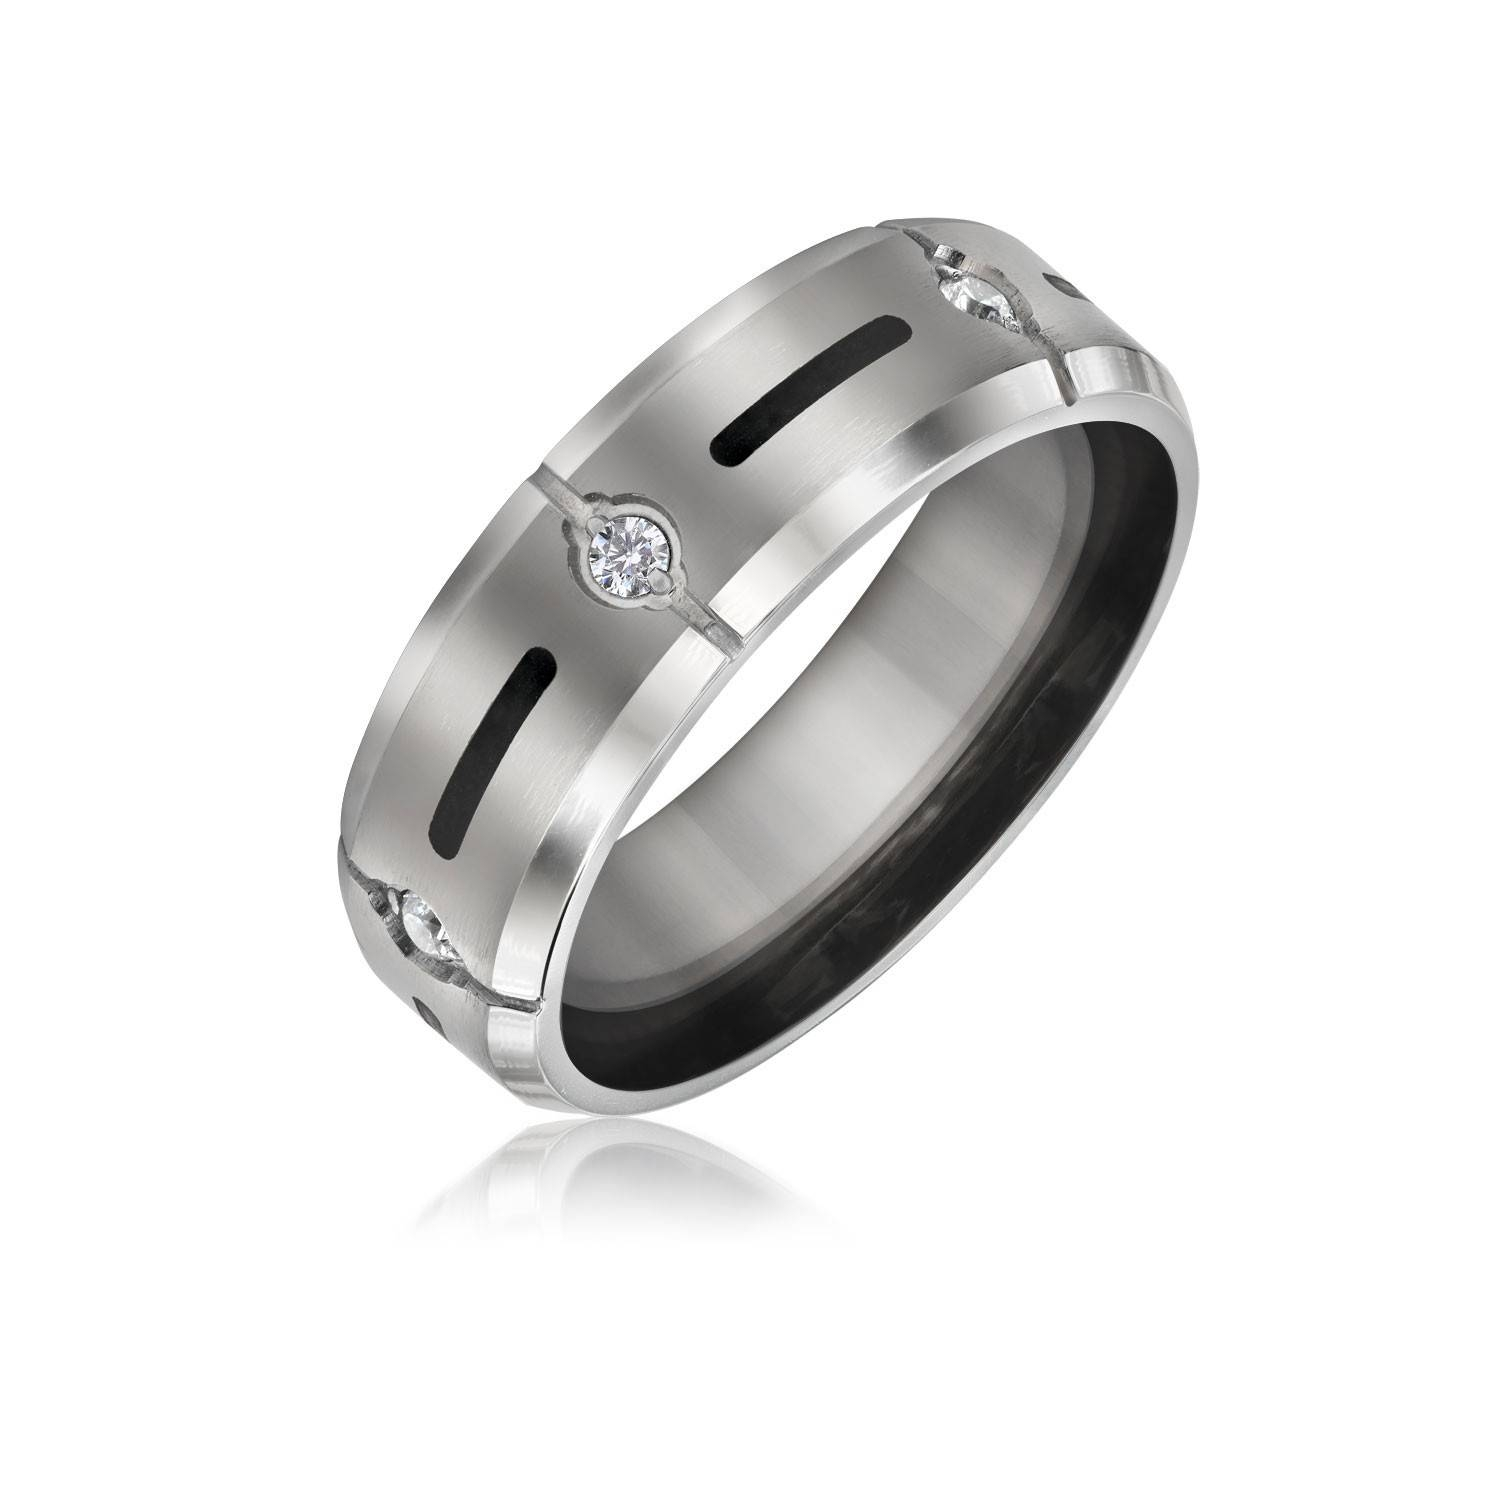 Mens Titanium Ring Cz Wedding Band Ring With Resin Inlay 7Mm With Regard To Titanium Men Wedding Bands (Gallery 5 of 15)